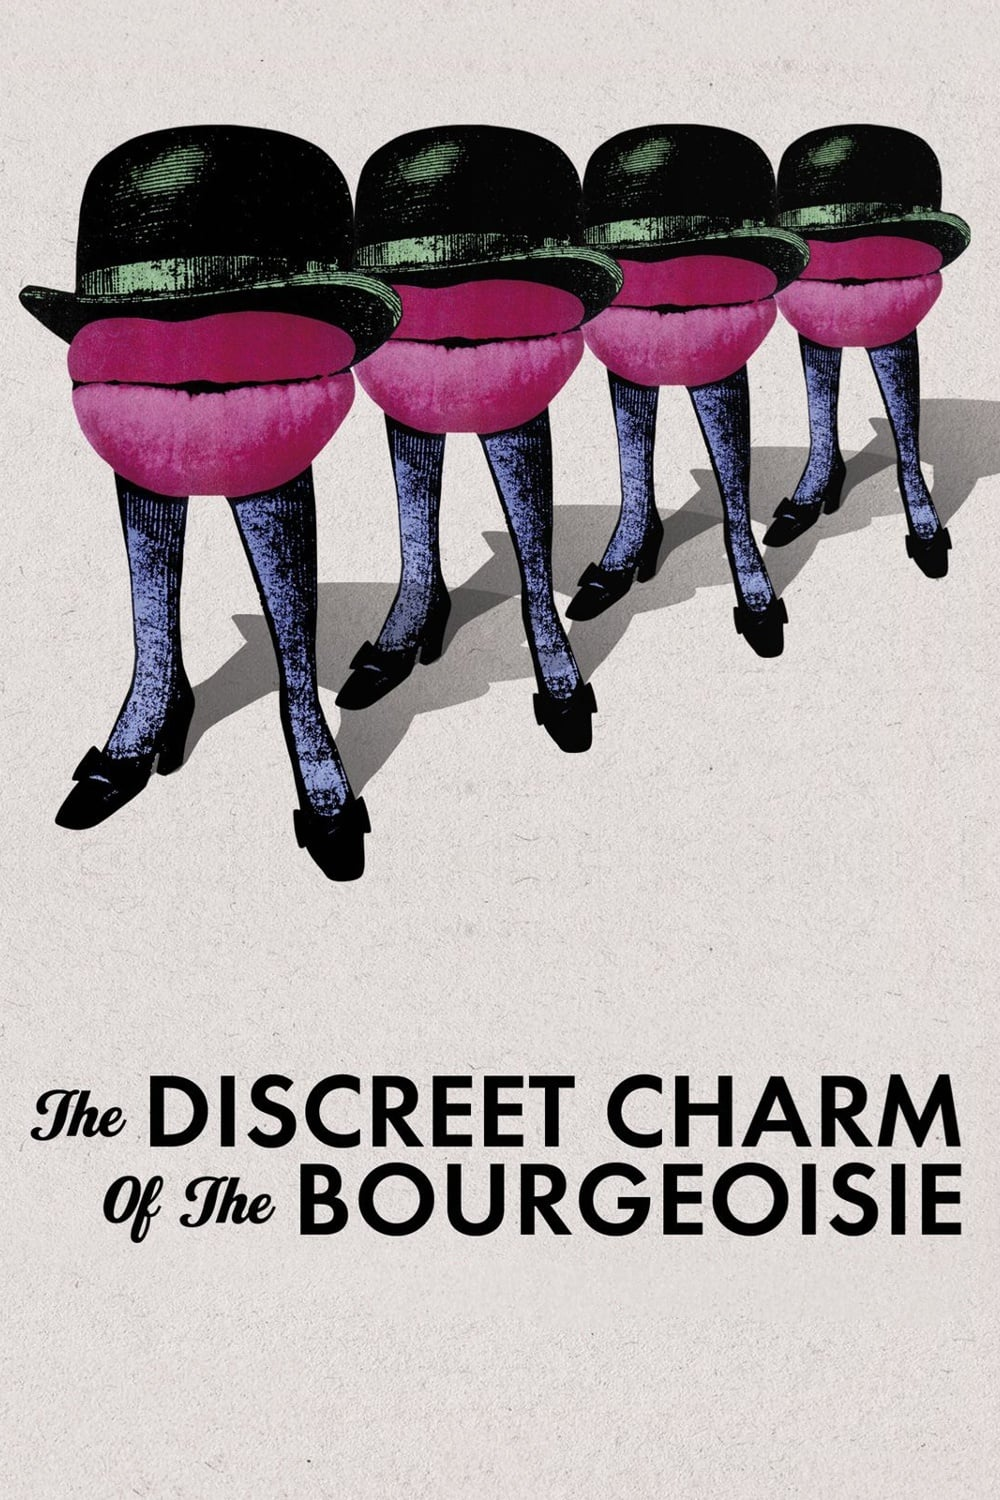 Poster for Discreet Charm of the Bourgeoisie (Le Charme discret de la bourgeoisie), Th